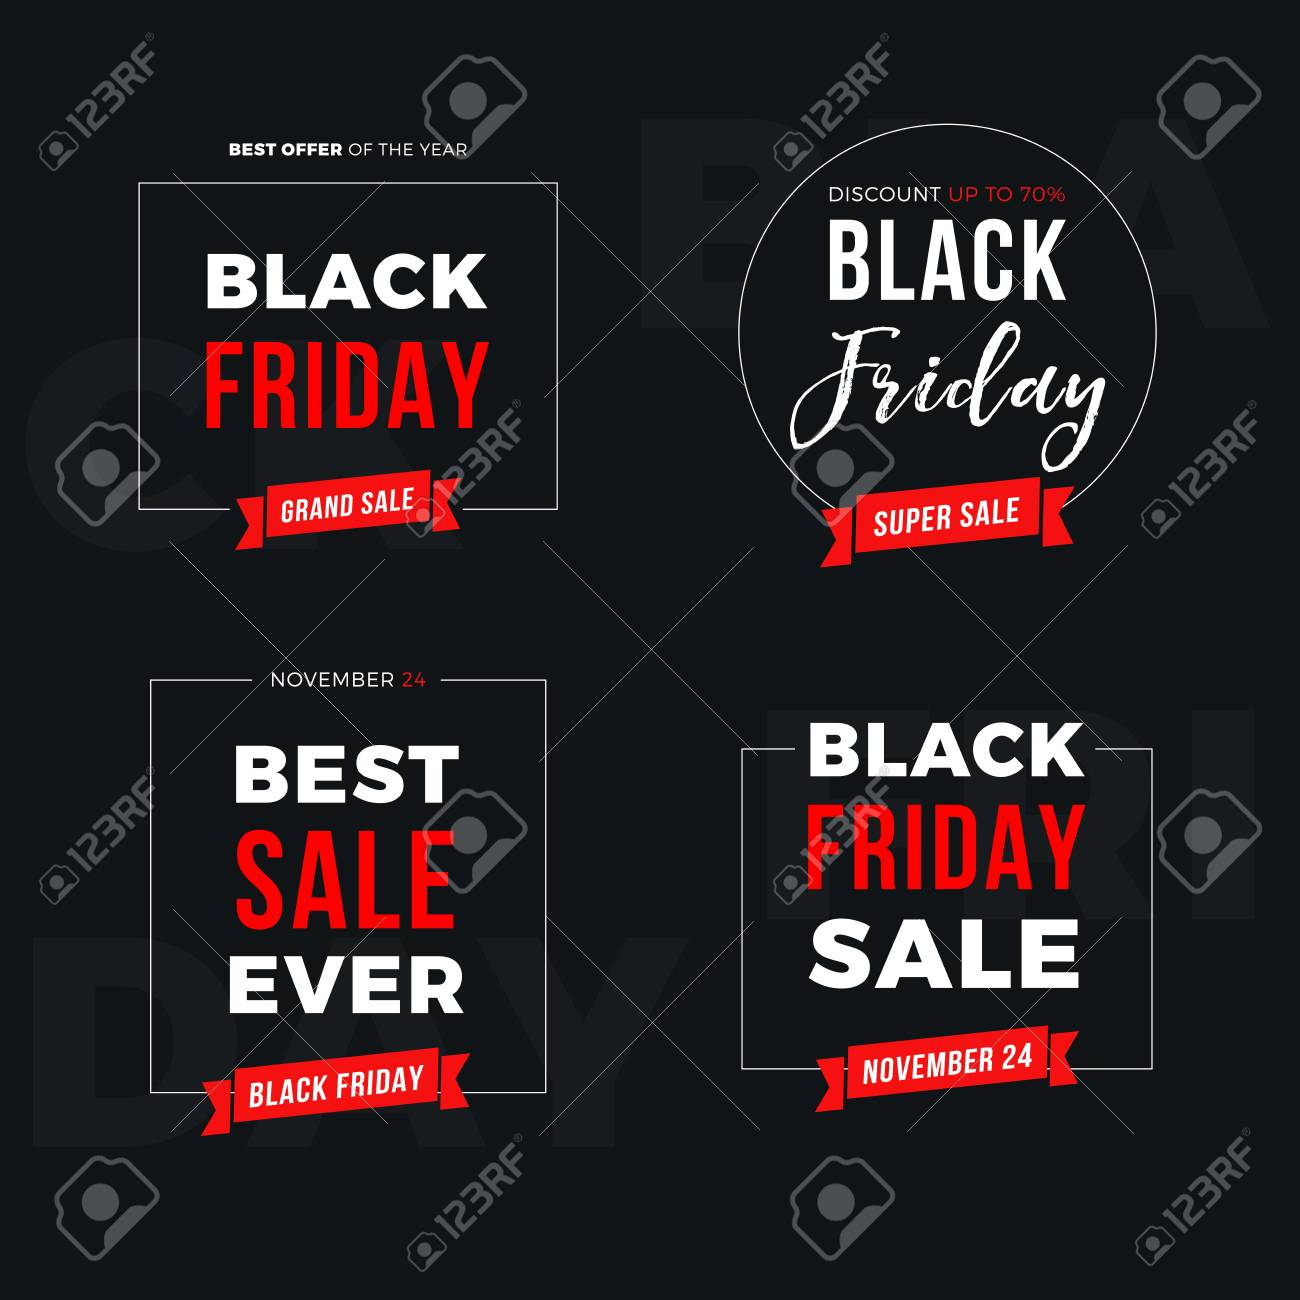 Set Of Black Friday Sale Banners Most Popular Promo Of The Royalty Free Cliparts Vectors And Stock Illustration Image 111480484